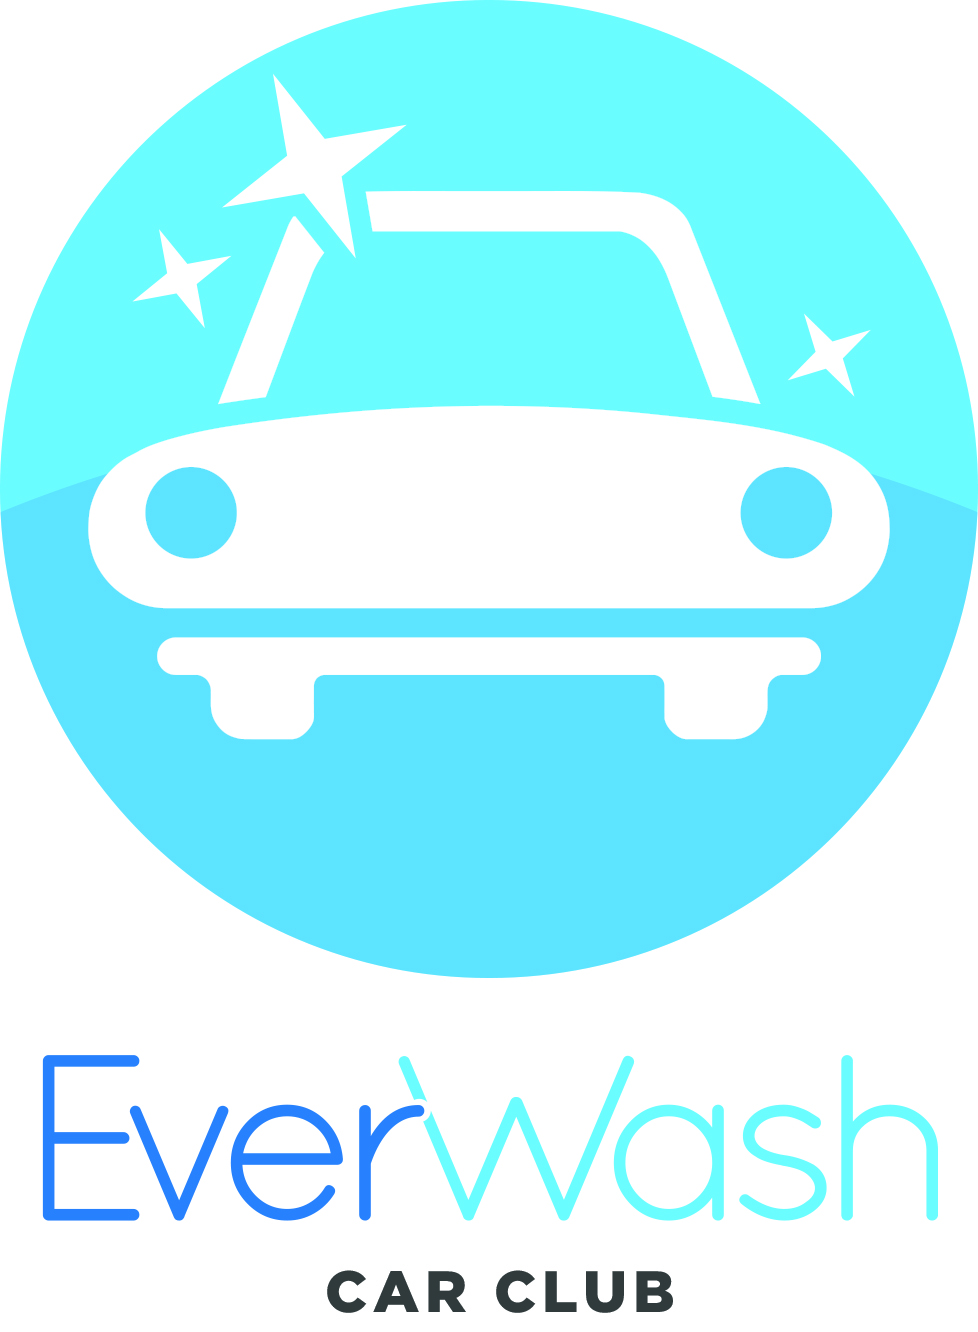 everwash-logo.jpeg